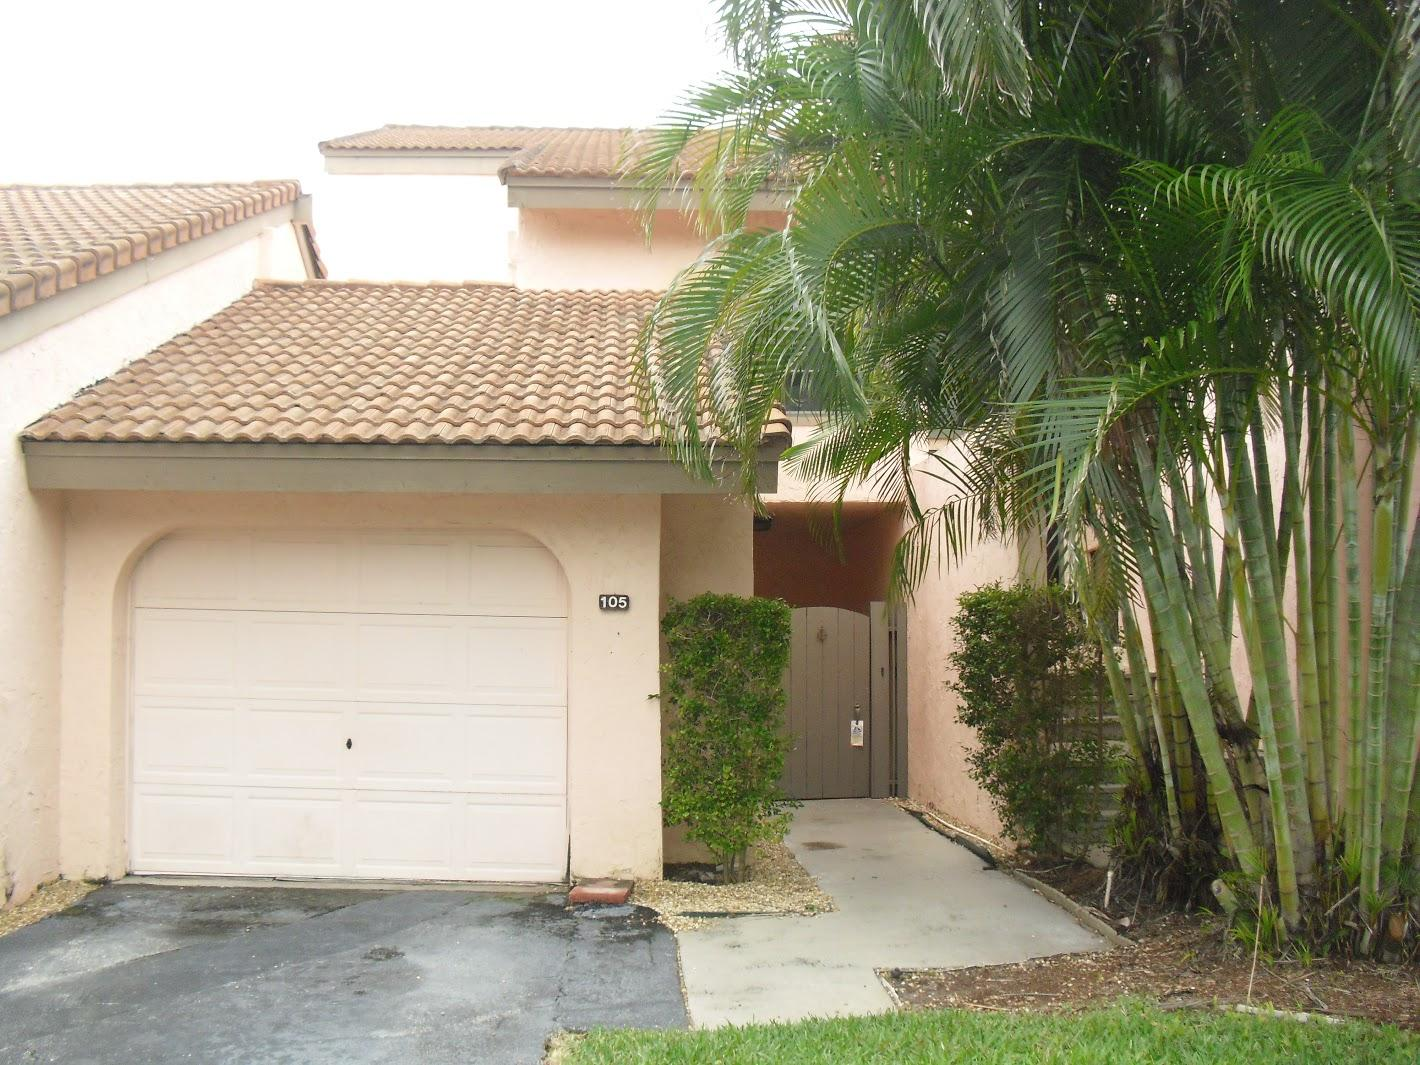 Details for 1800 Embassy Drive 105, West Palm Beach, FL 33401